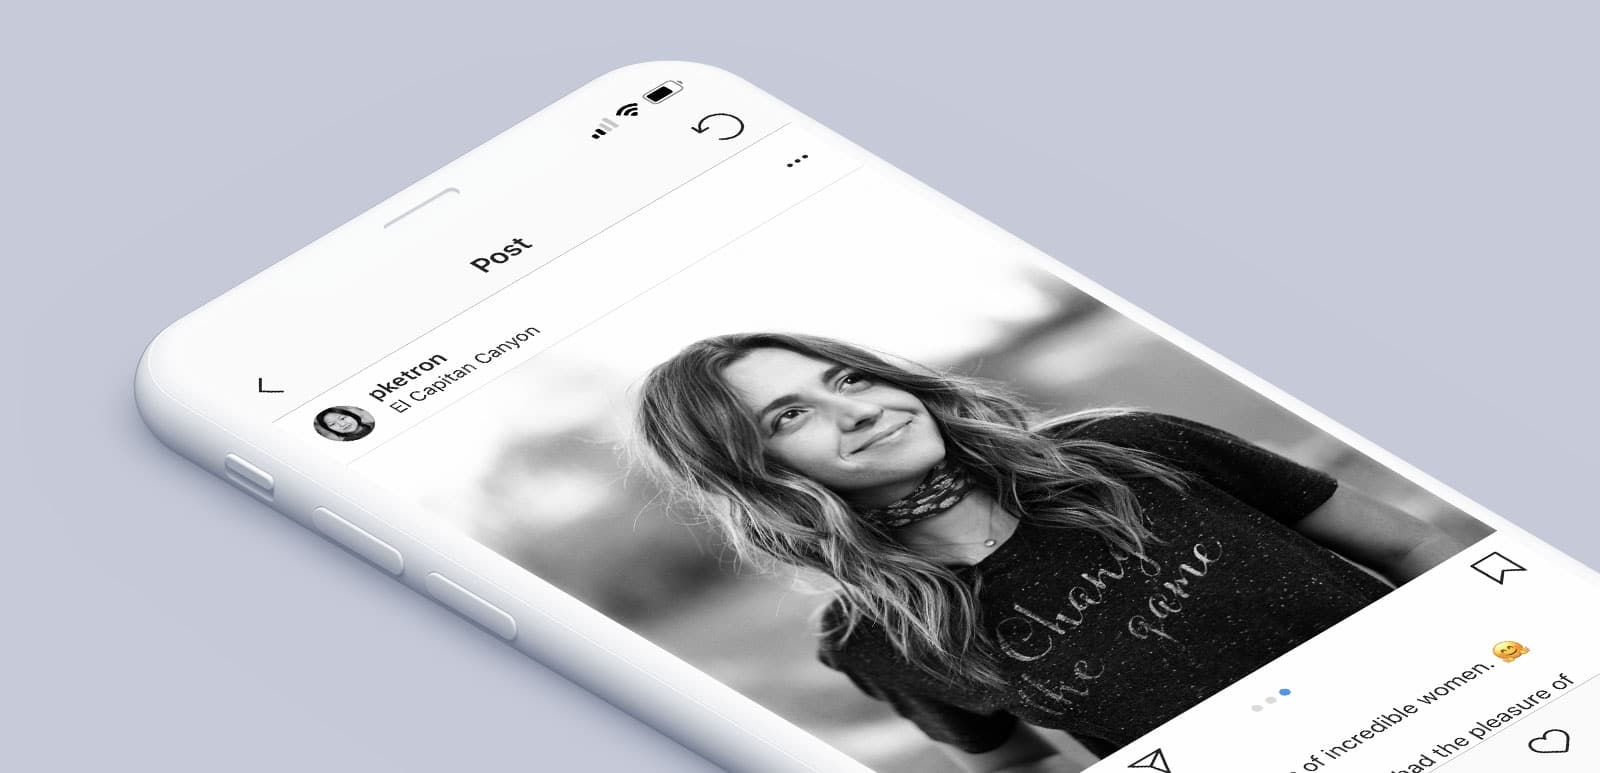 Pei Ketron - Incredible Woman, Instagram Mockup